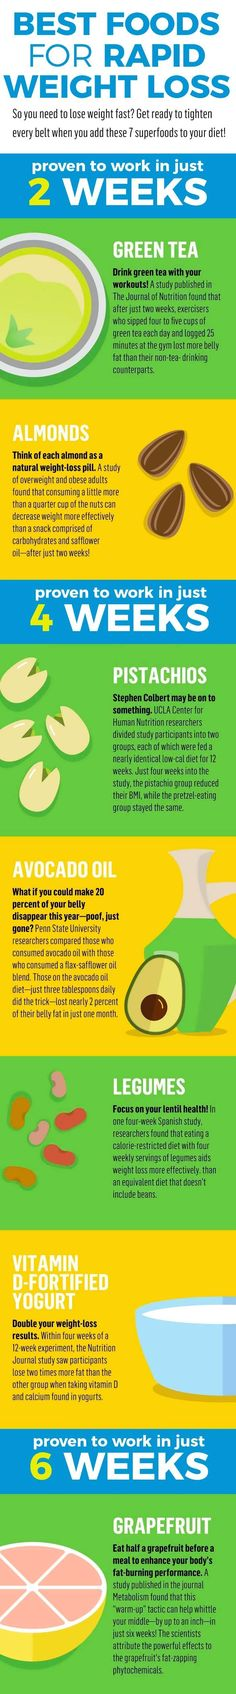 Fat-burning foods. Best foods for rapid weight loss